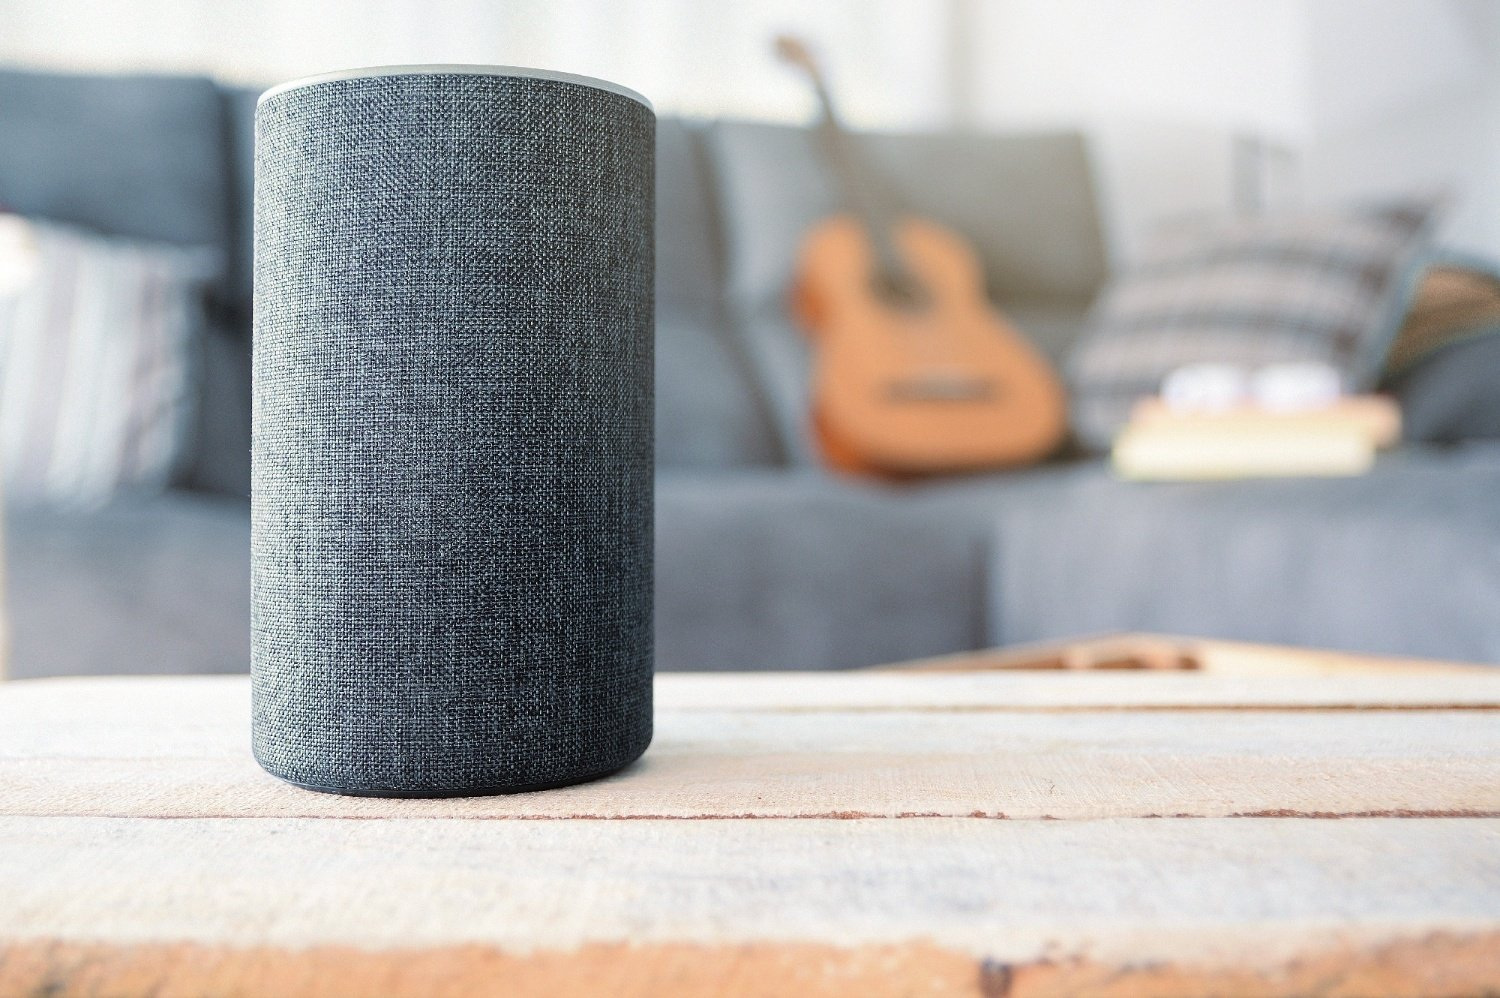 listening to music with Alexa